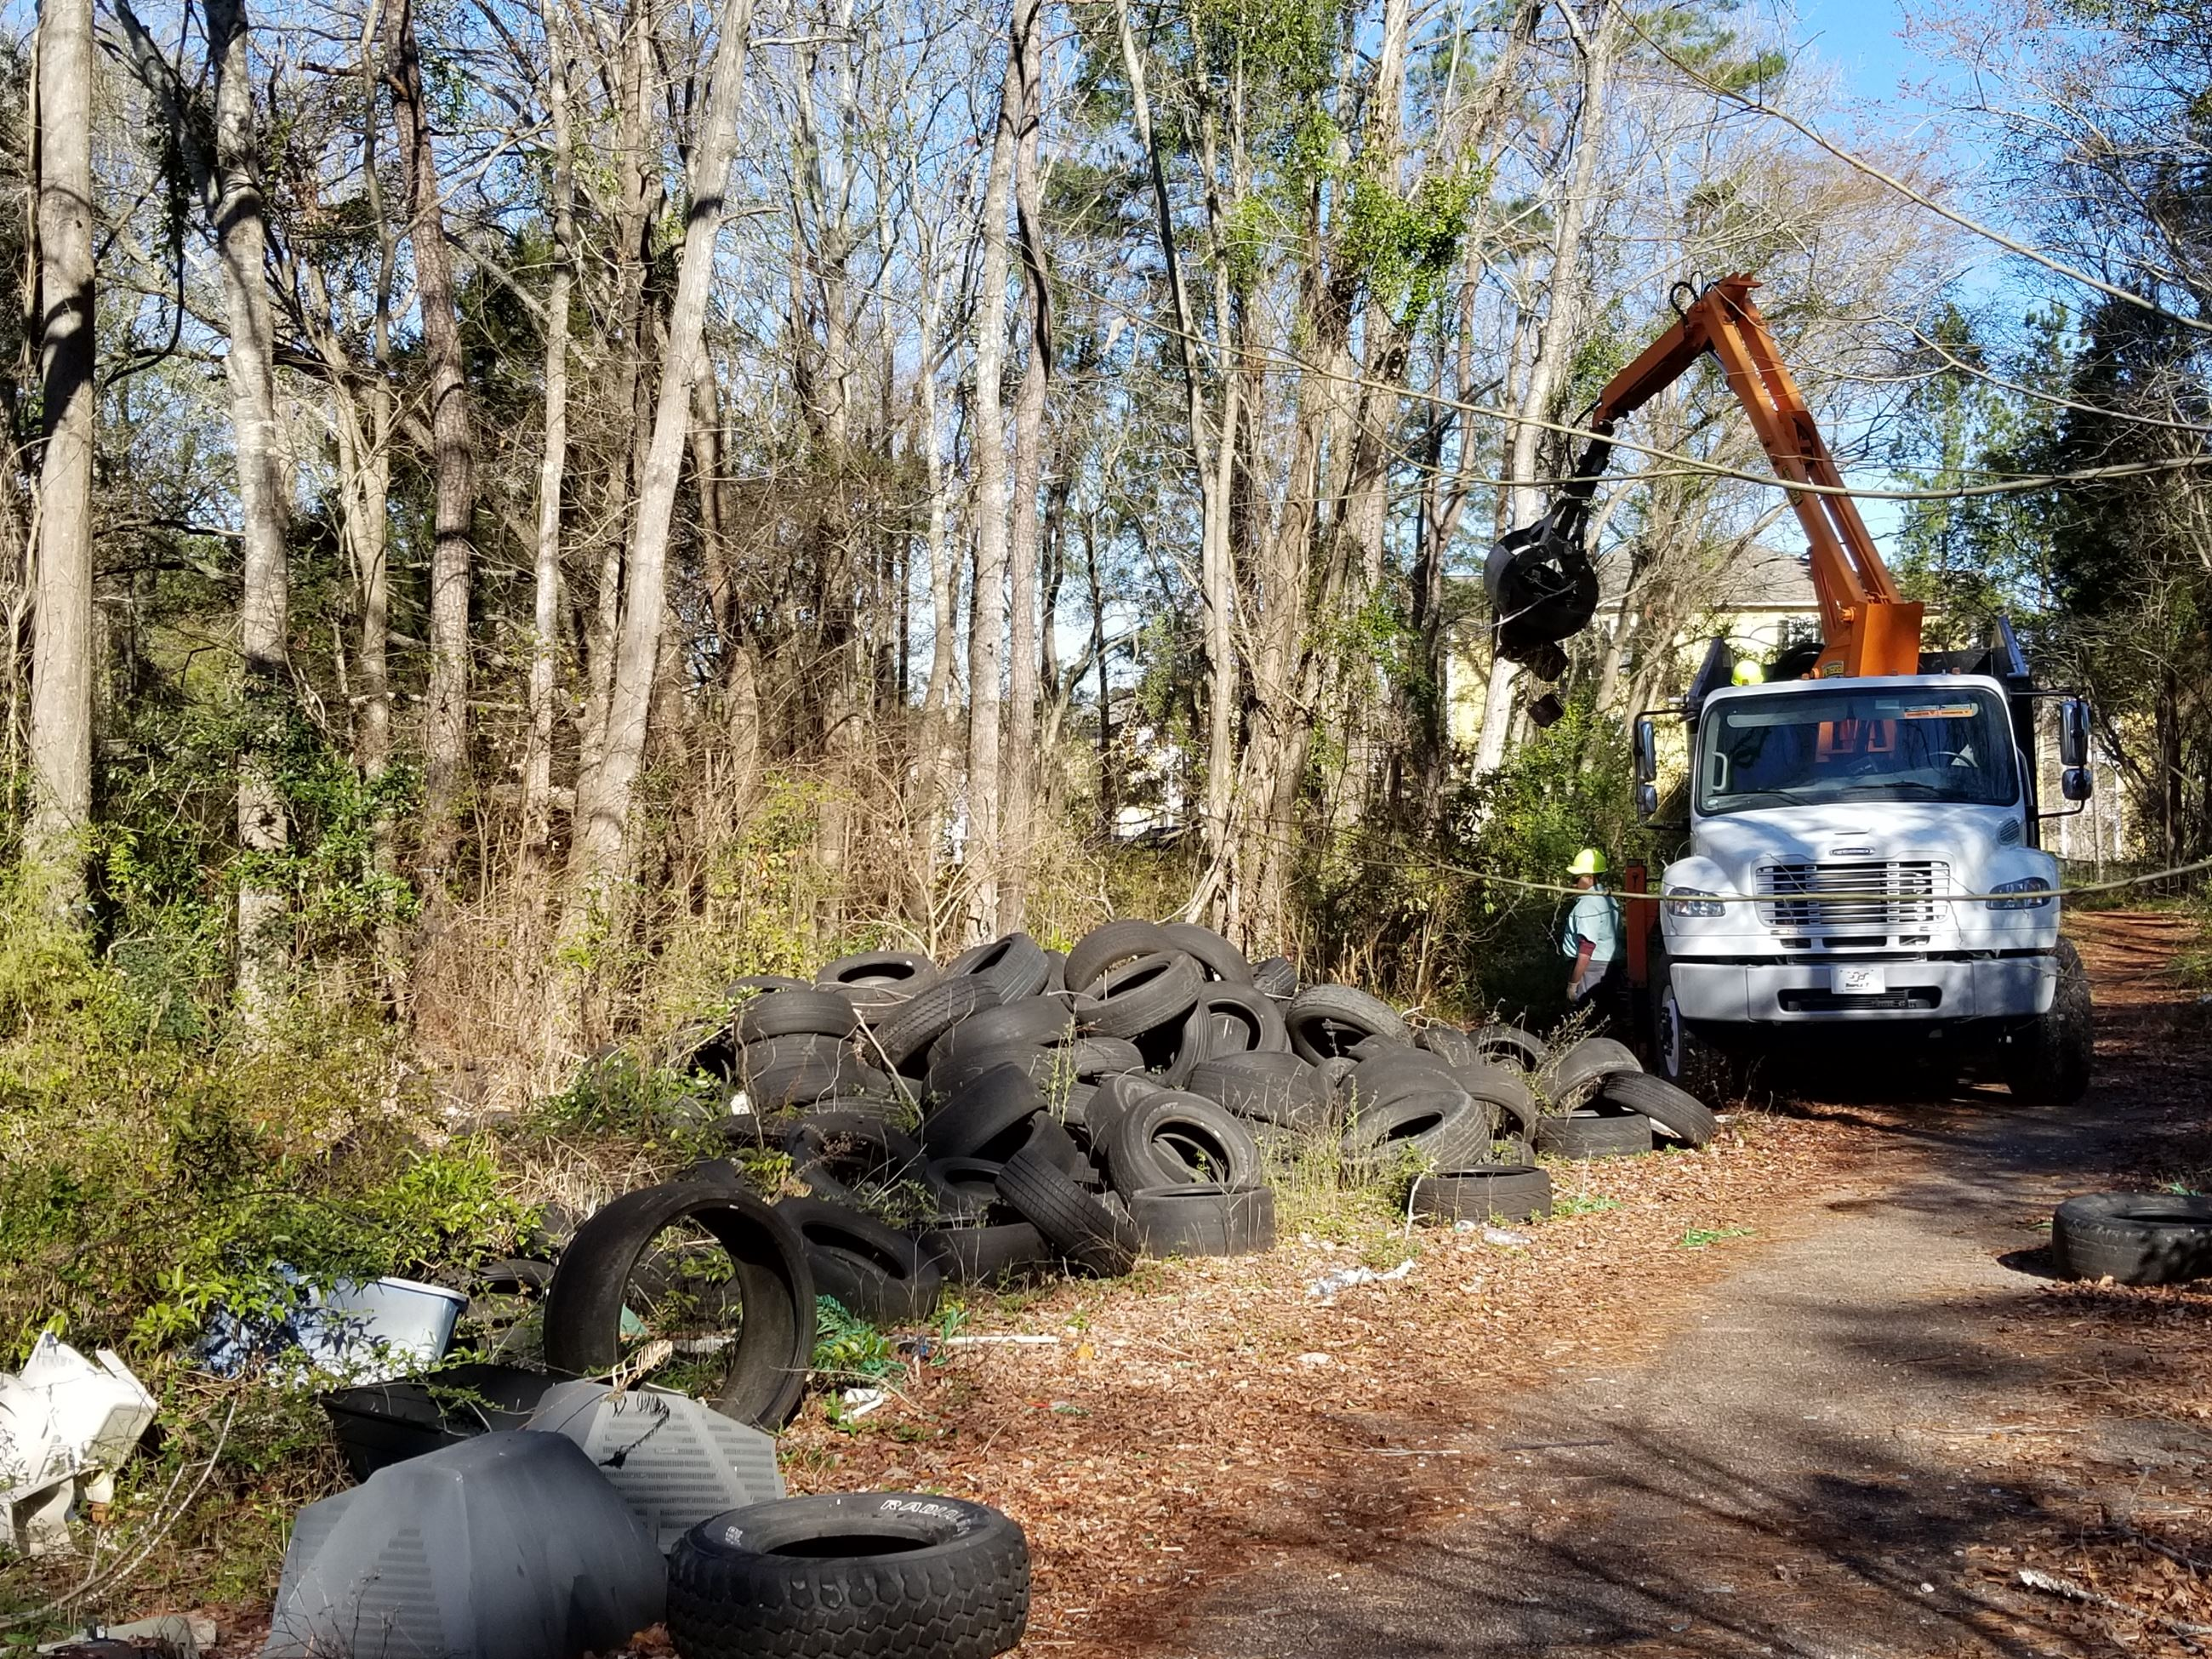 Illegal Dumping near Bushy Park Reservoir